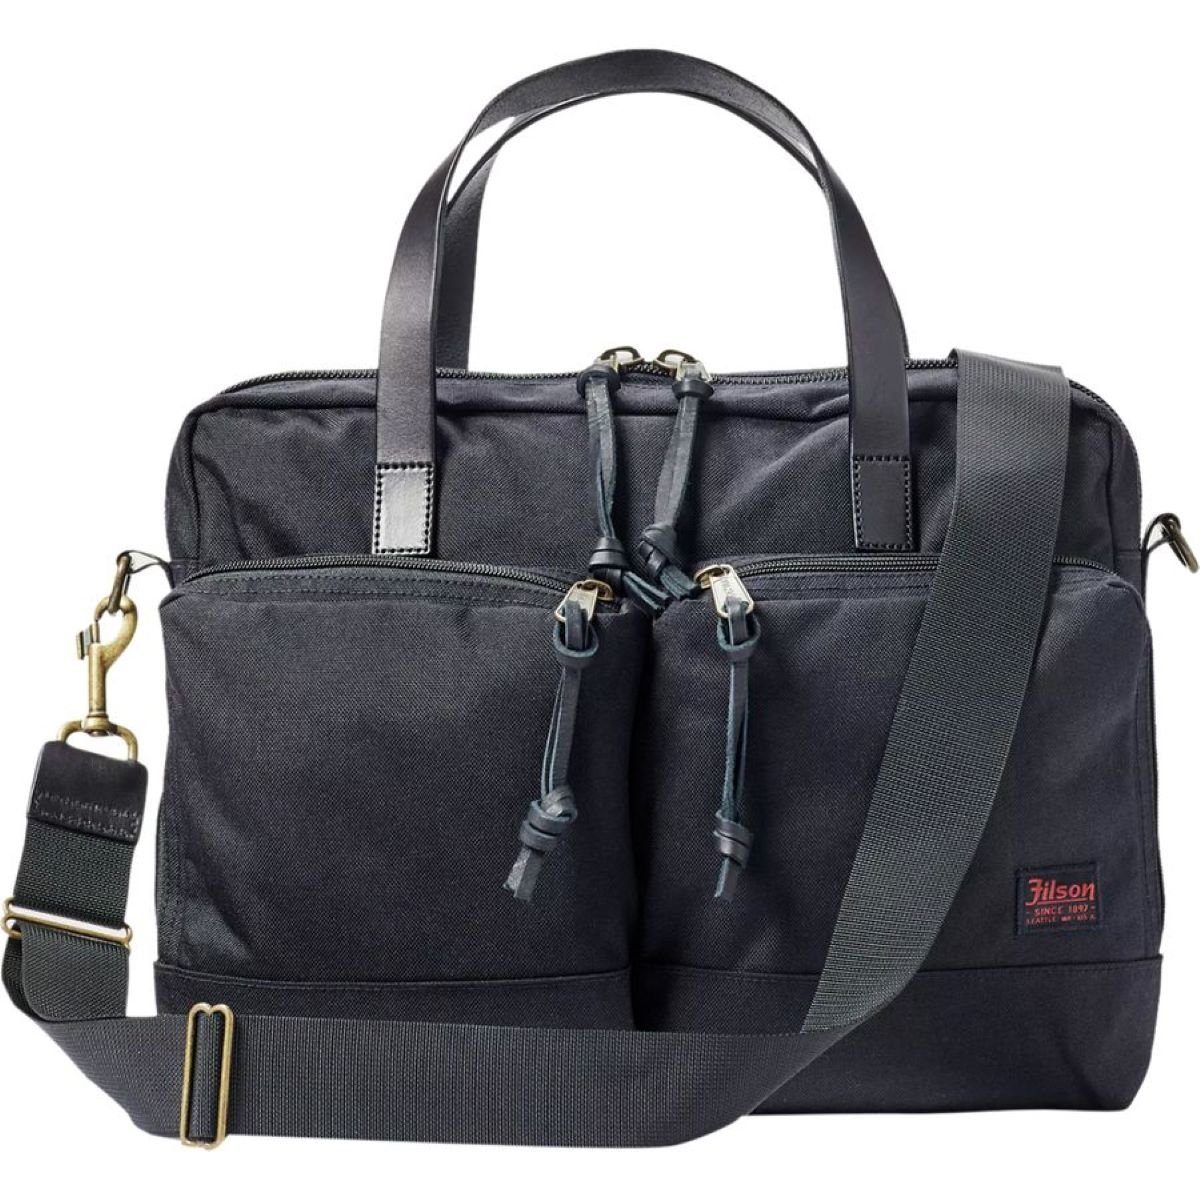 Briefcase Filson en nylon